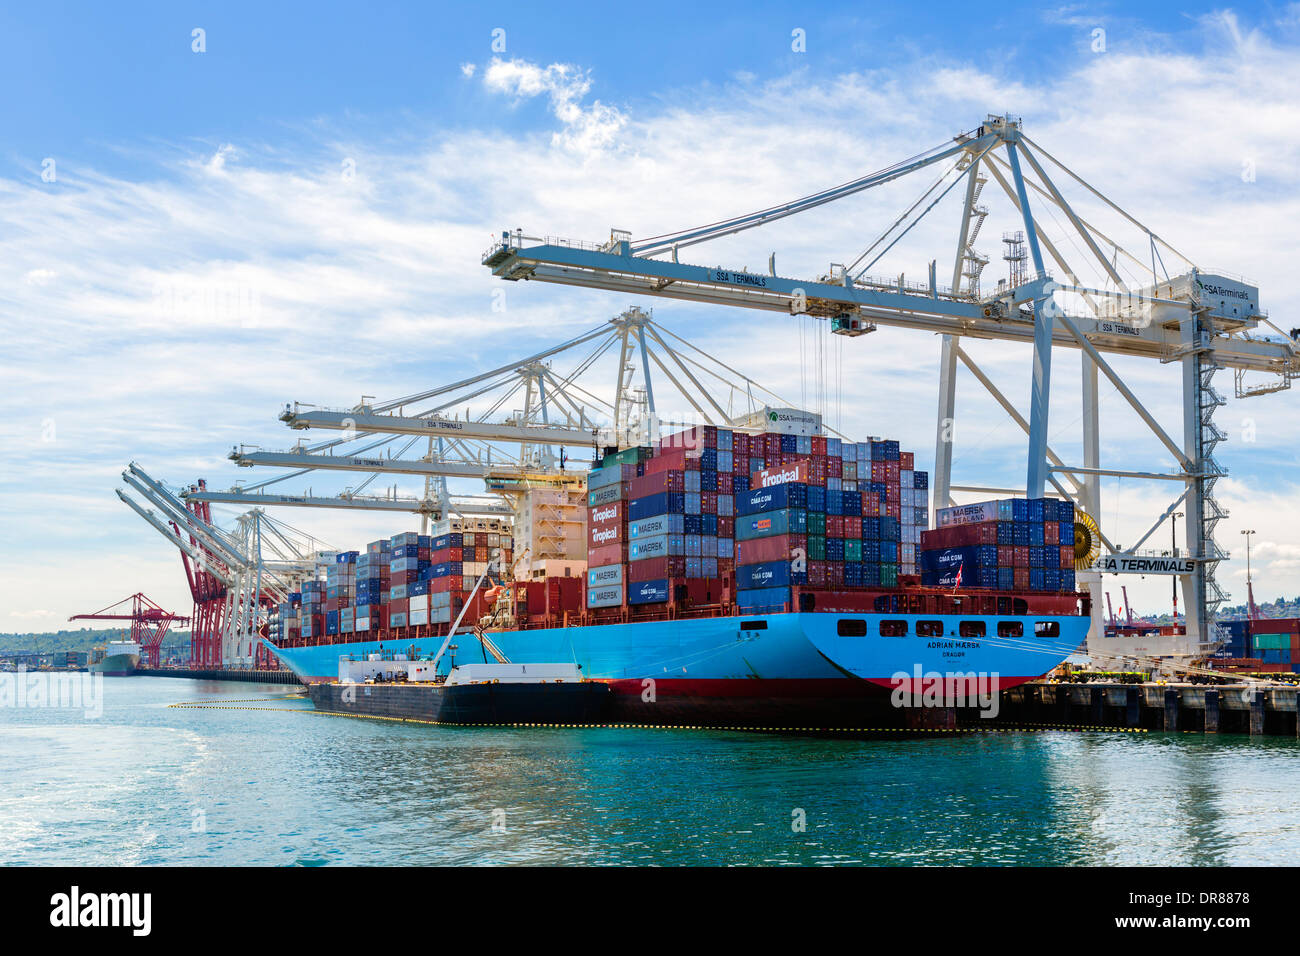 Container ship being unloaded in the Port of Seattle, Washington, USA - Stock Image